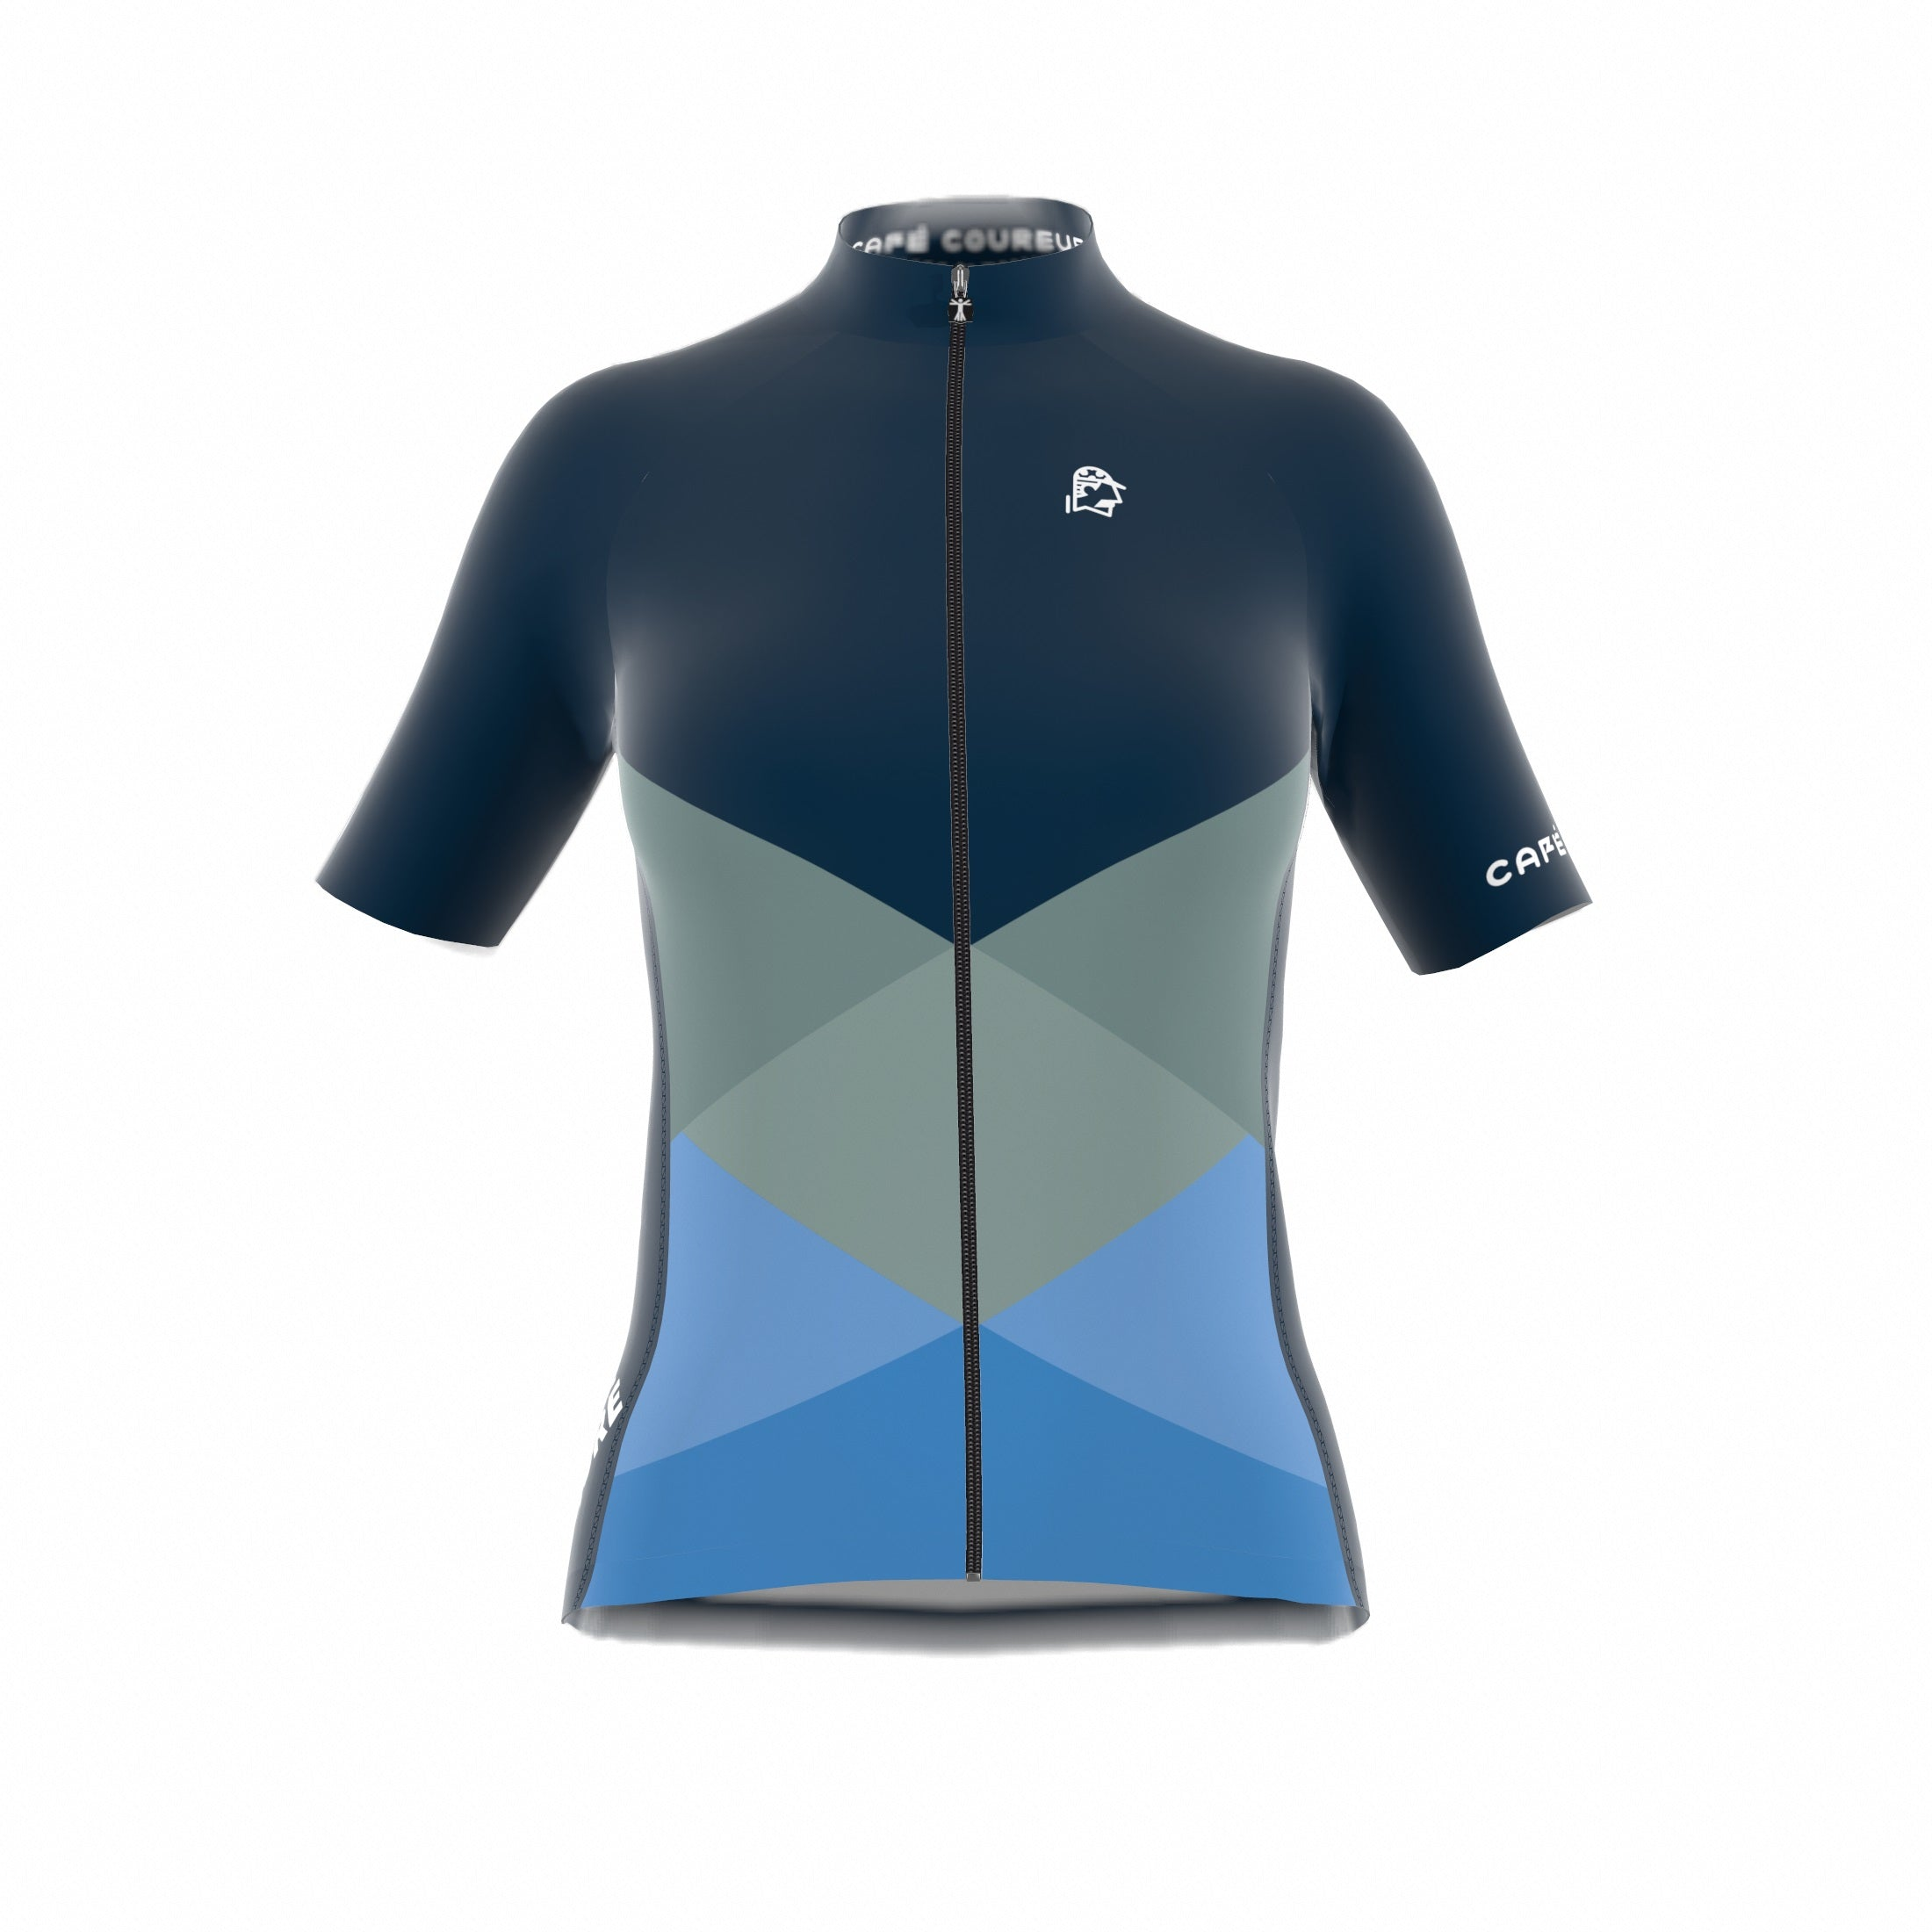 PRE-ORDER Iconic Navy Blue Women's Short Sleeve Jersey